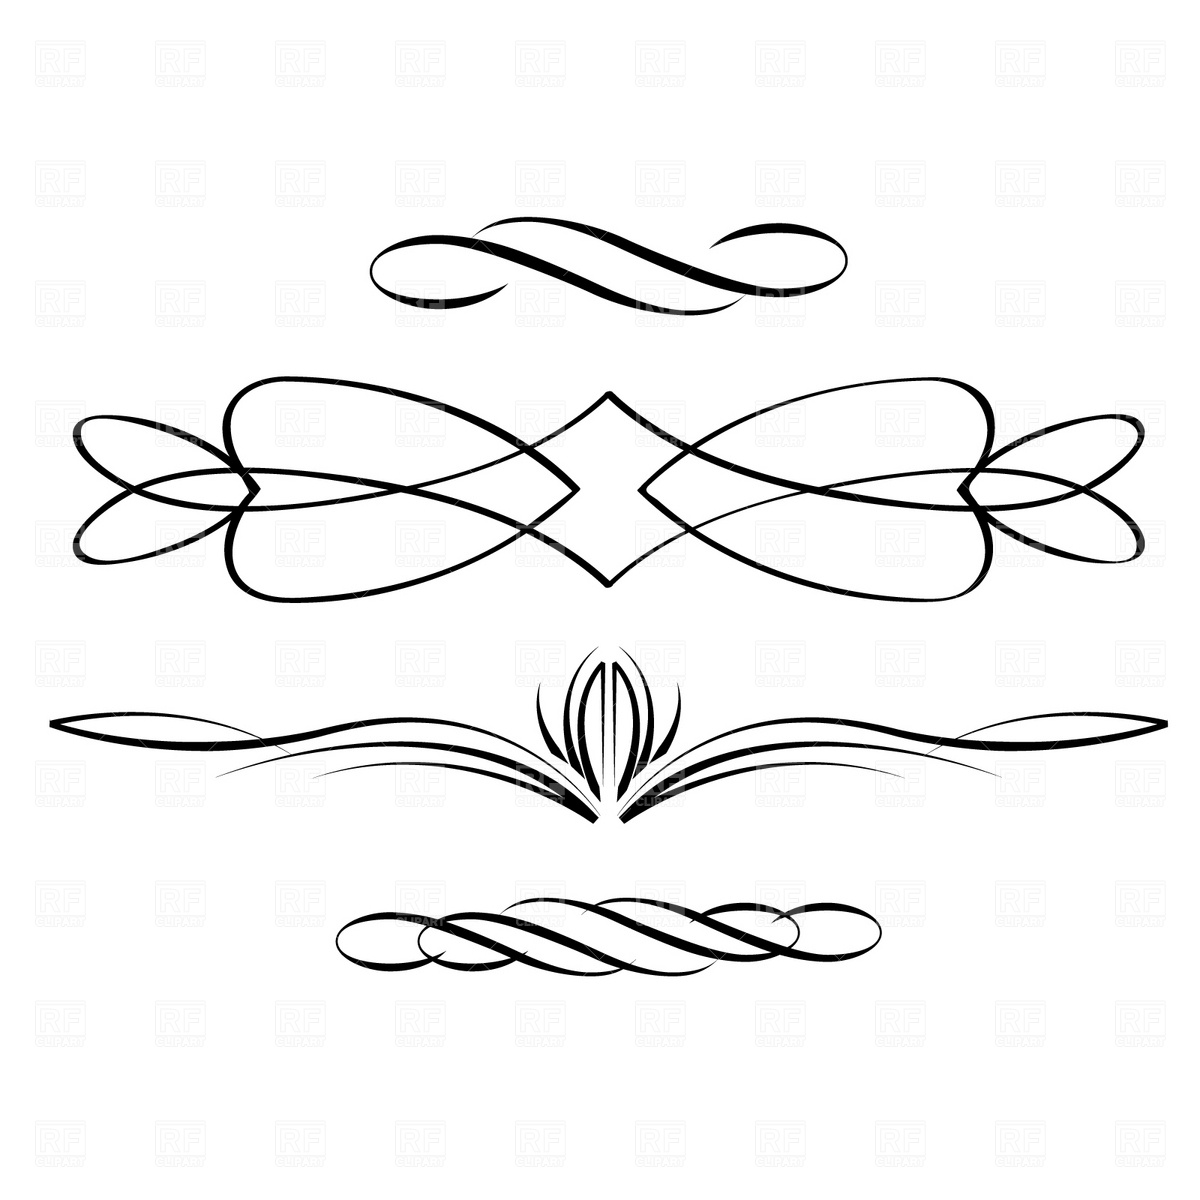 17 Scroll Clip Art Vector Images